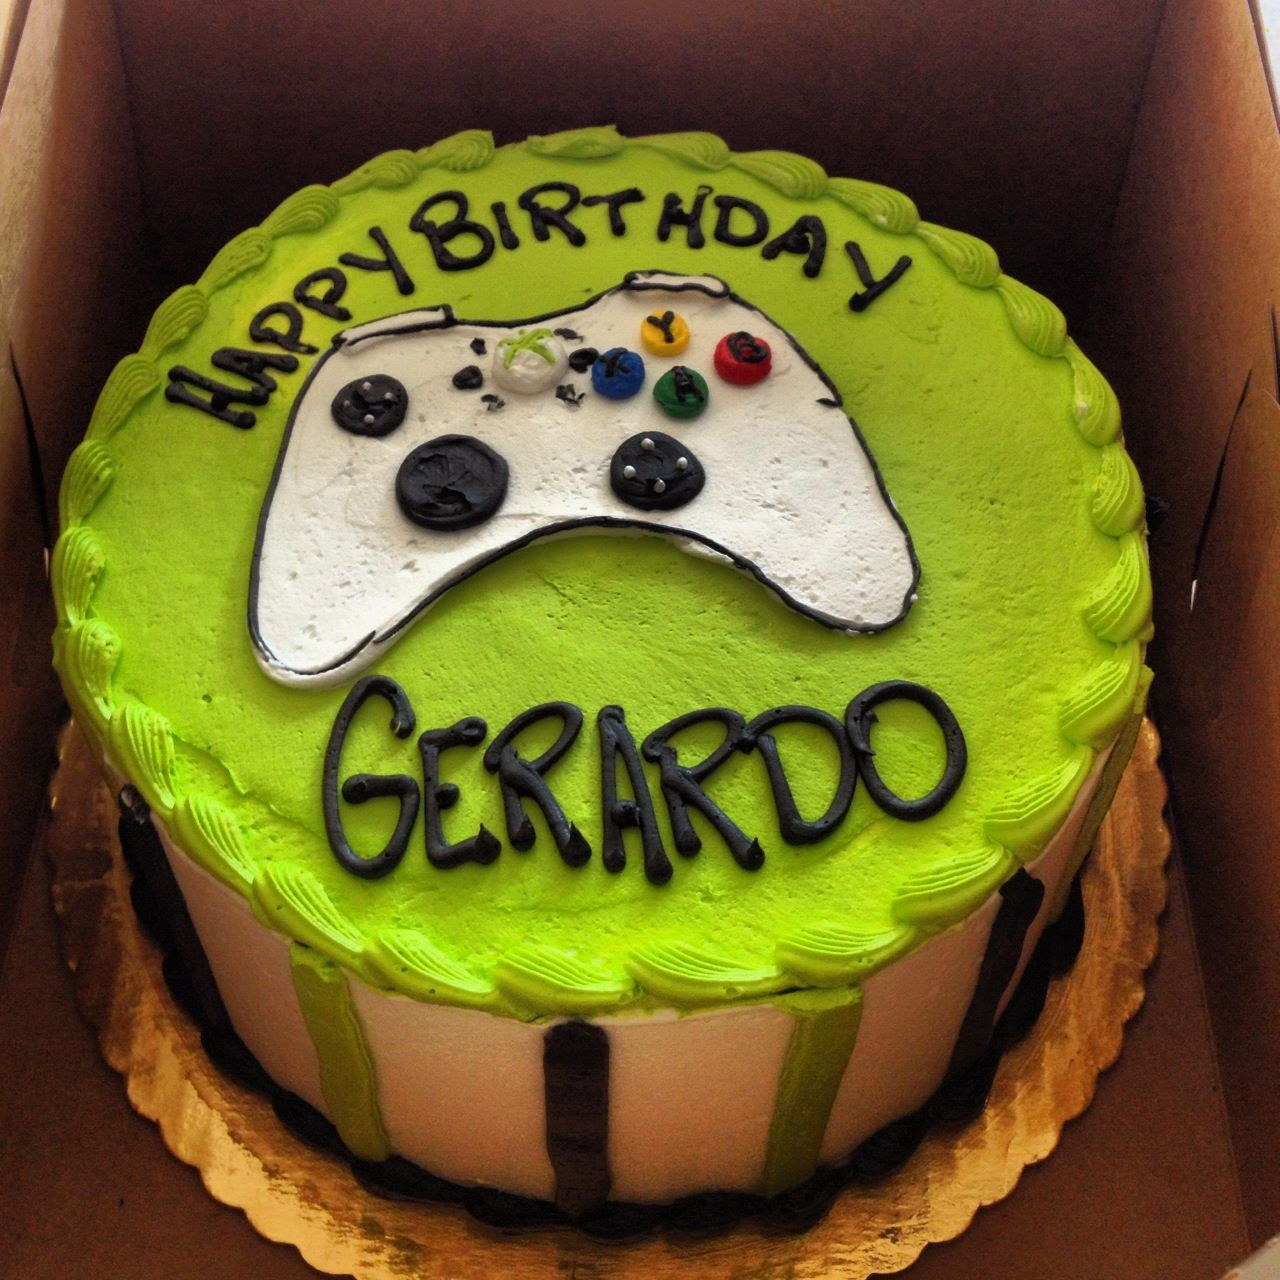 Xbox Cake Side Stripes Idea For Dq Cake Colors Xbox Party Ideas